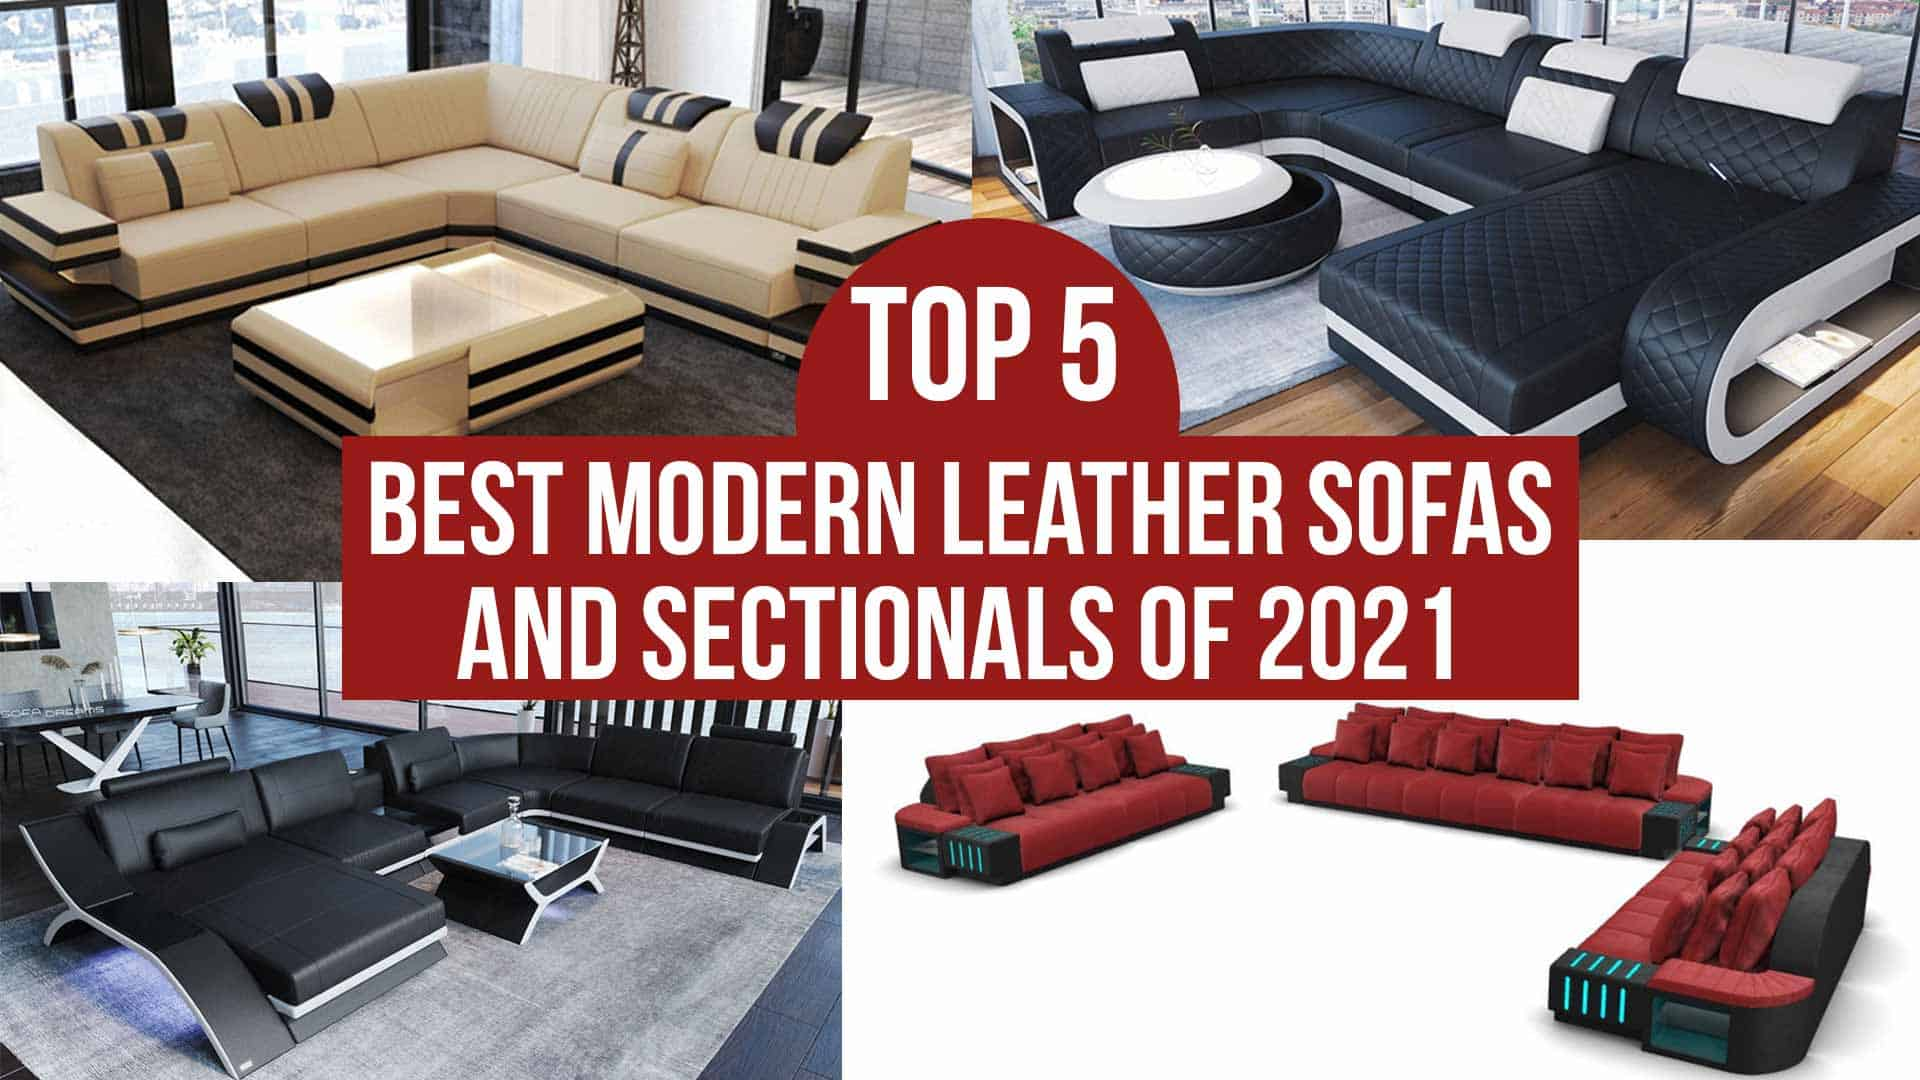 Top 5 Best Modern Leather Sofas and Sectionals of 2021